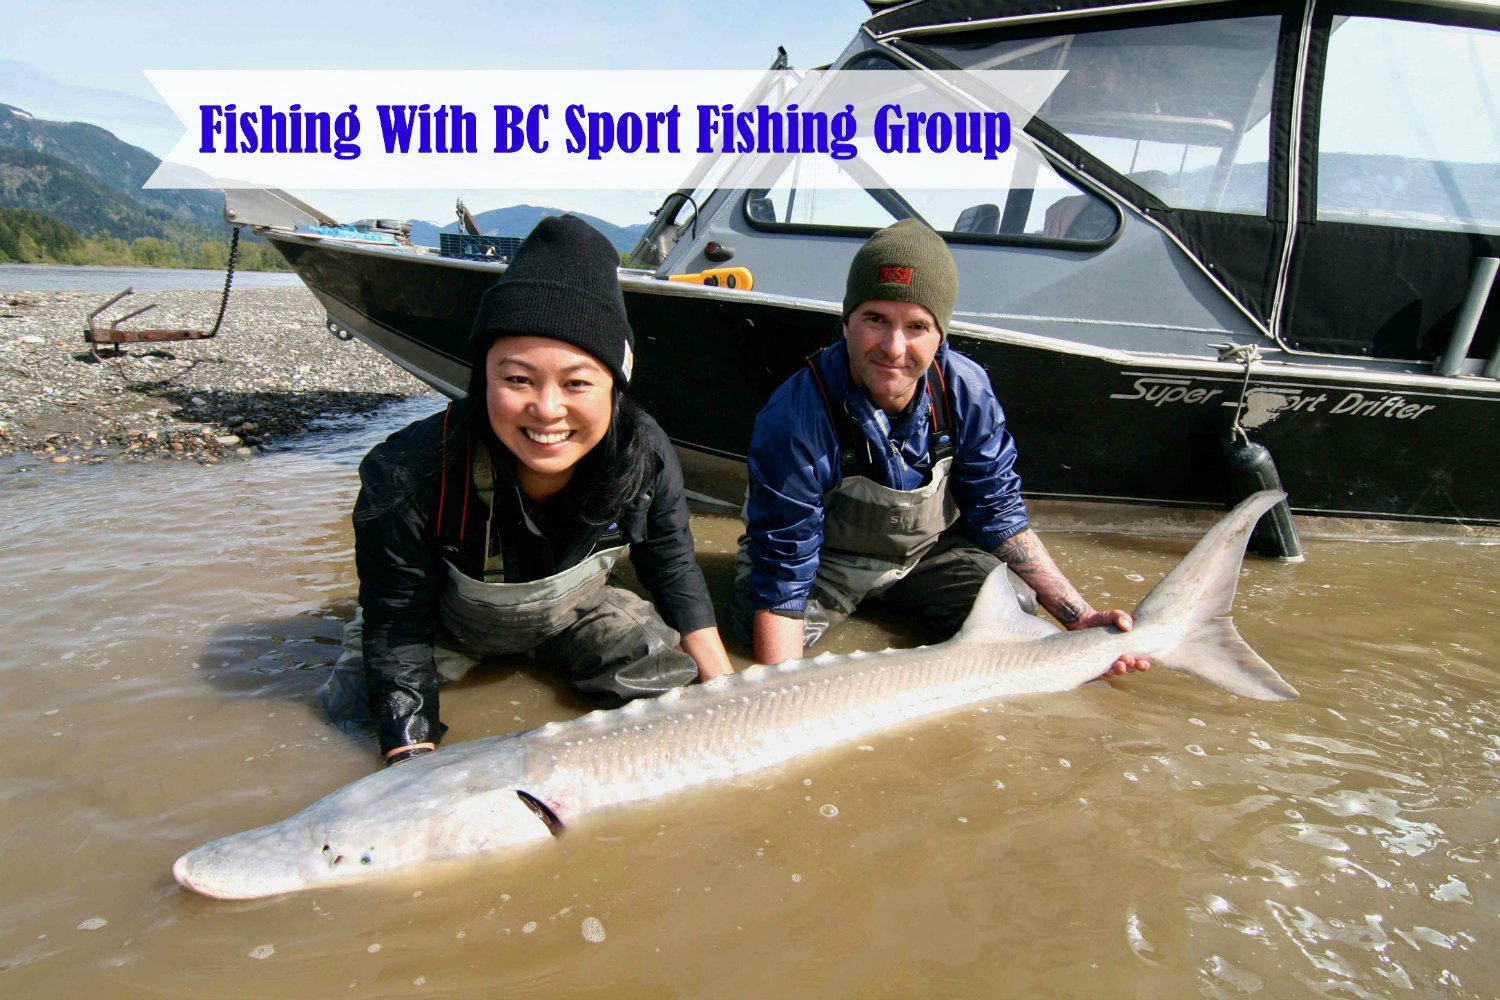 Sturgeon Fishing With BC Sport Fishing Group